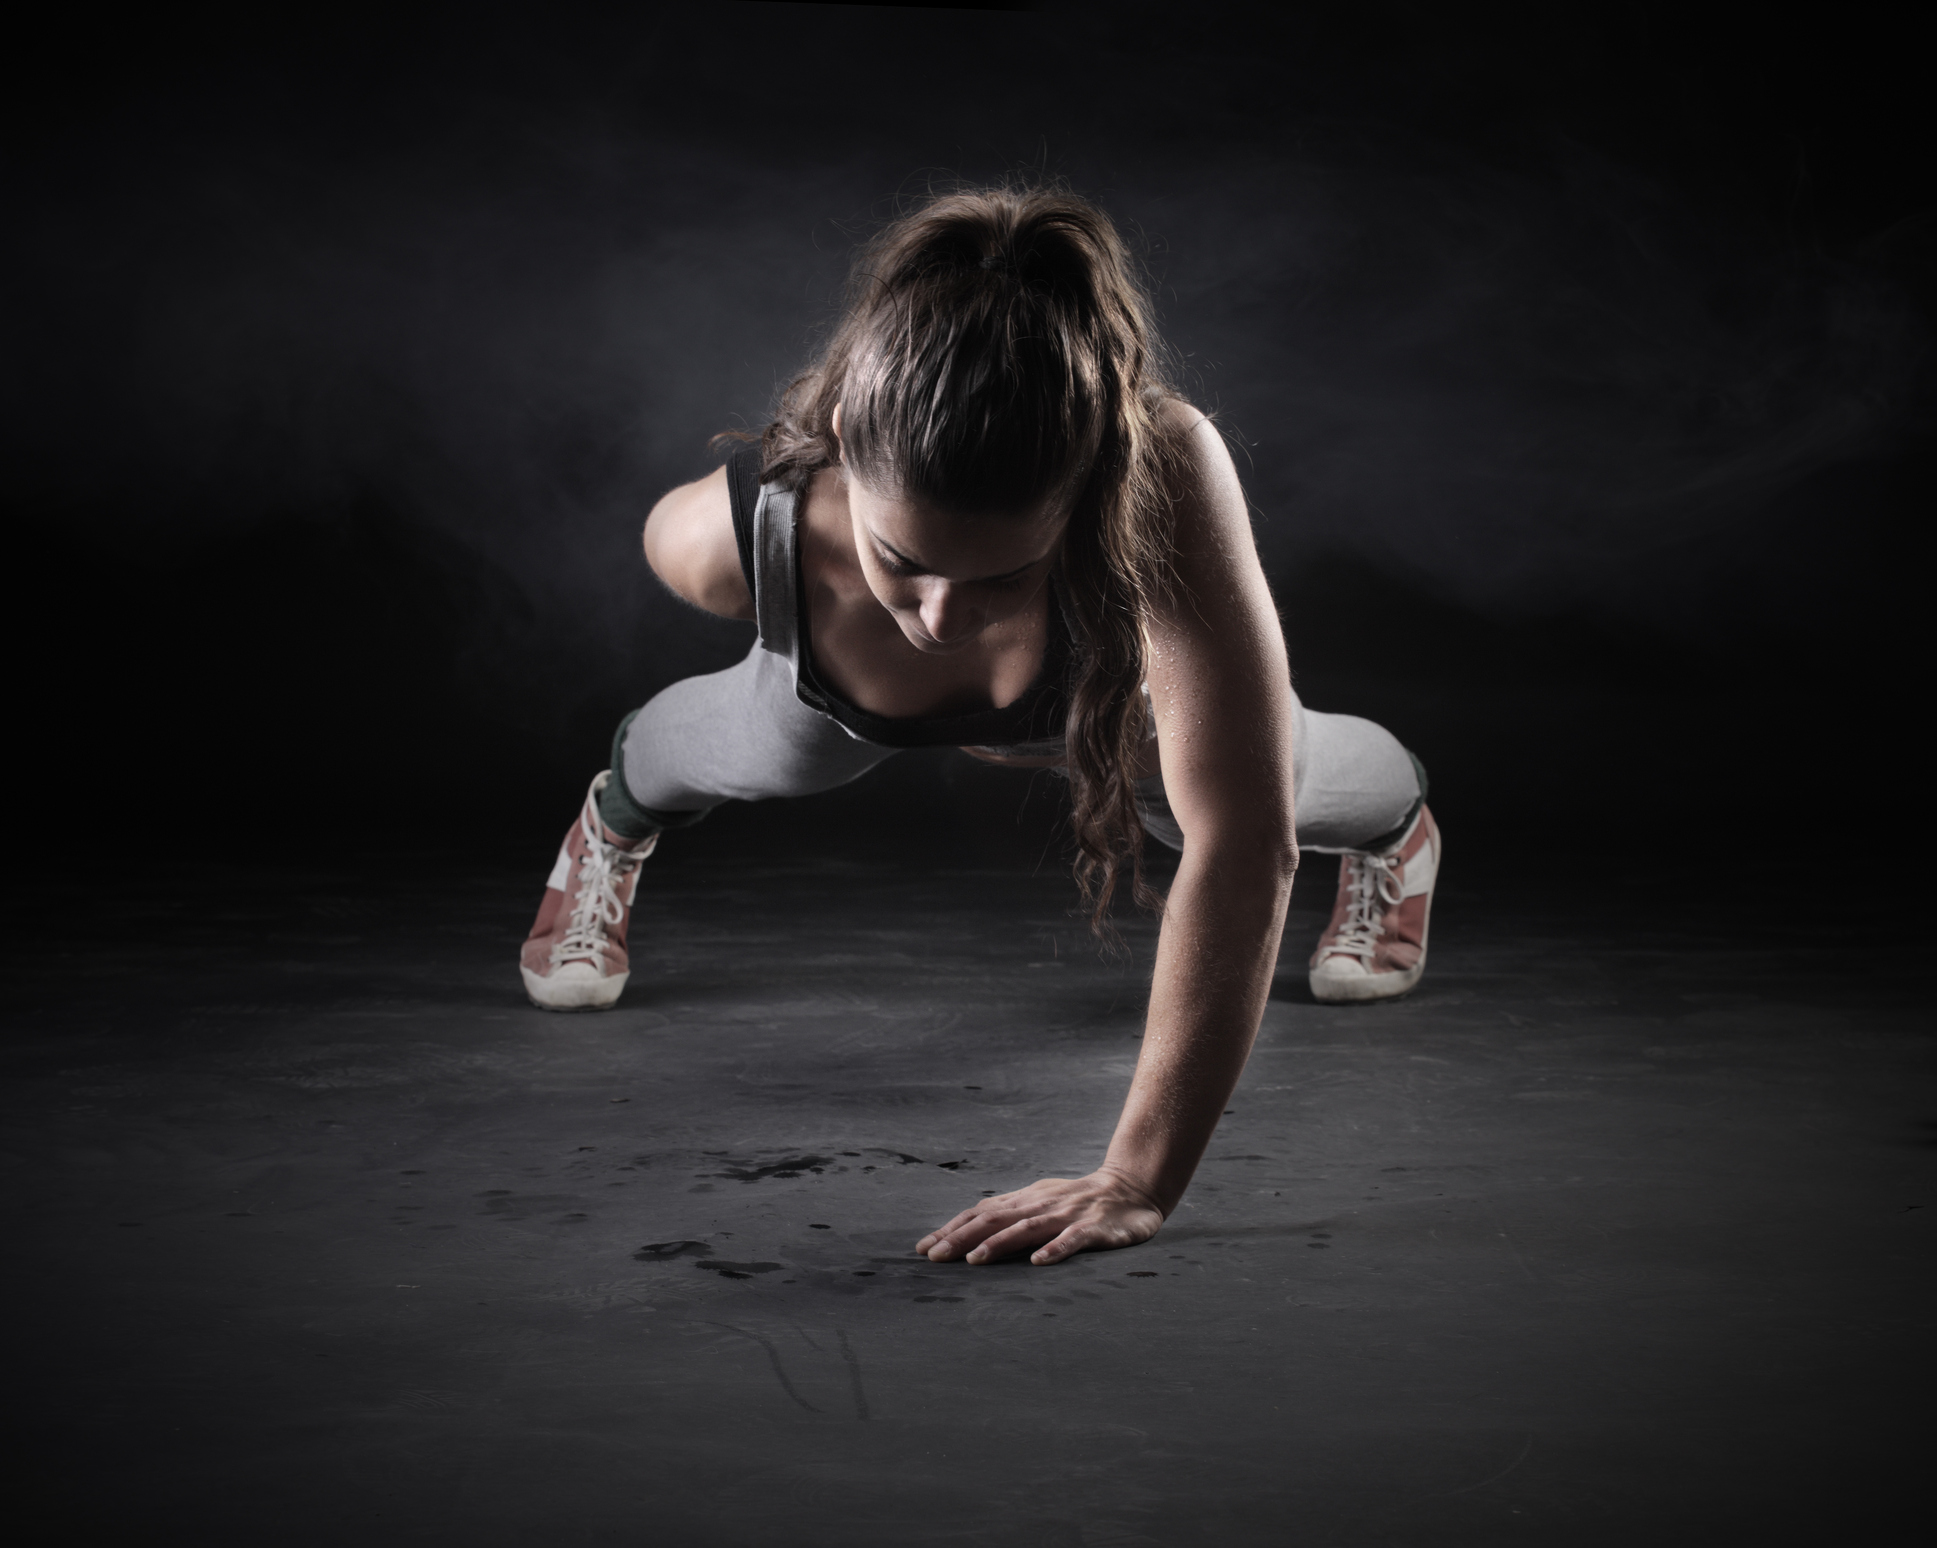 3-Minute Pushup Challenge